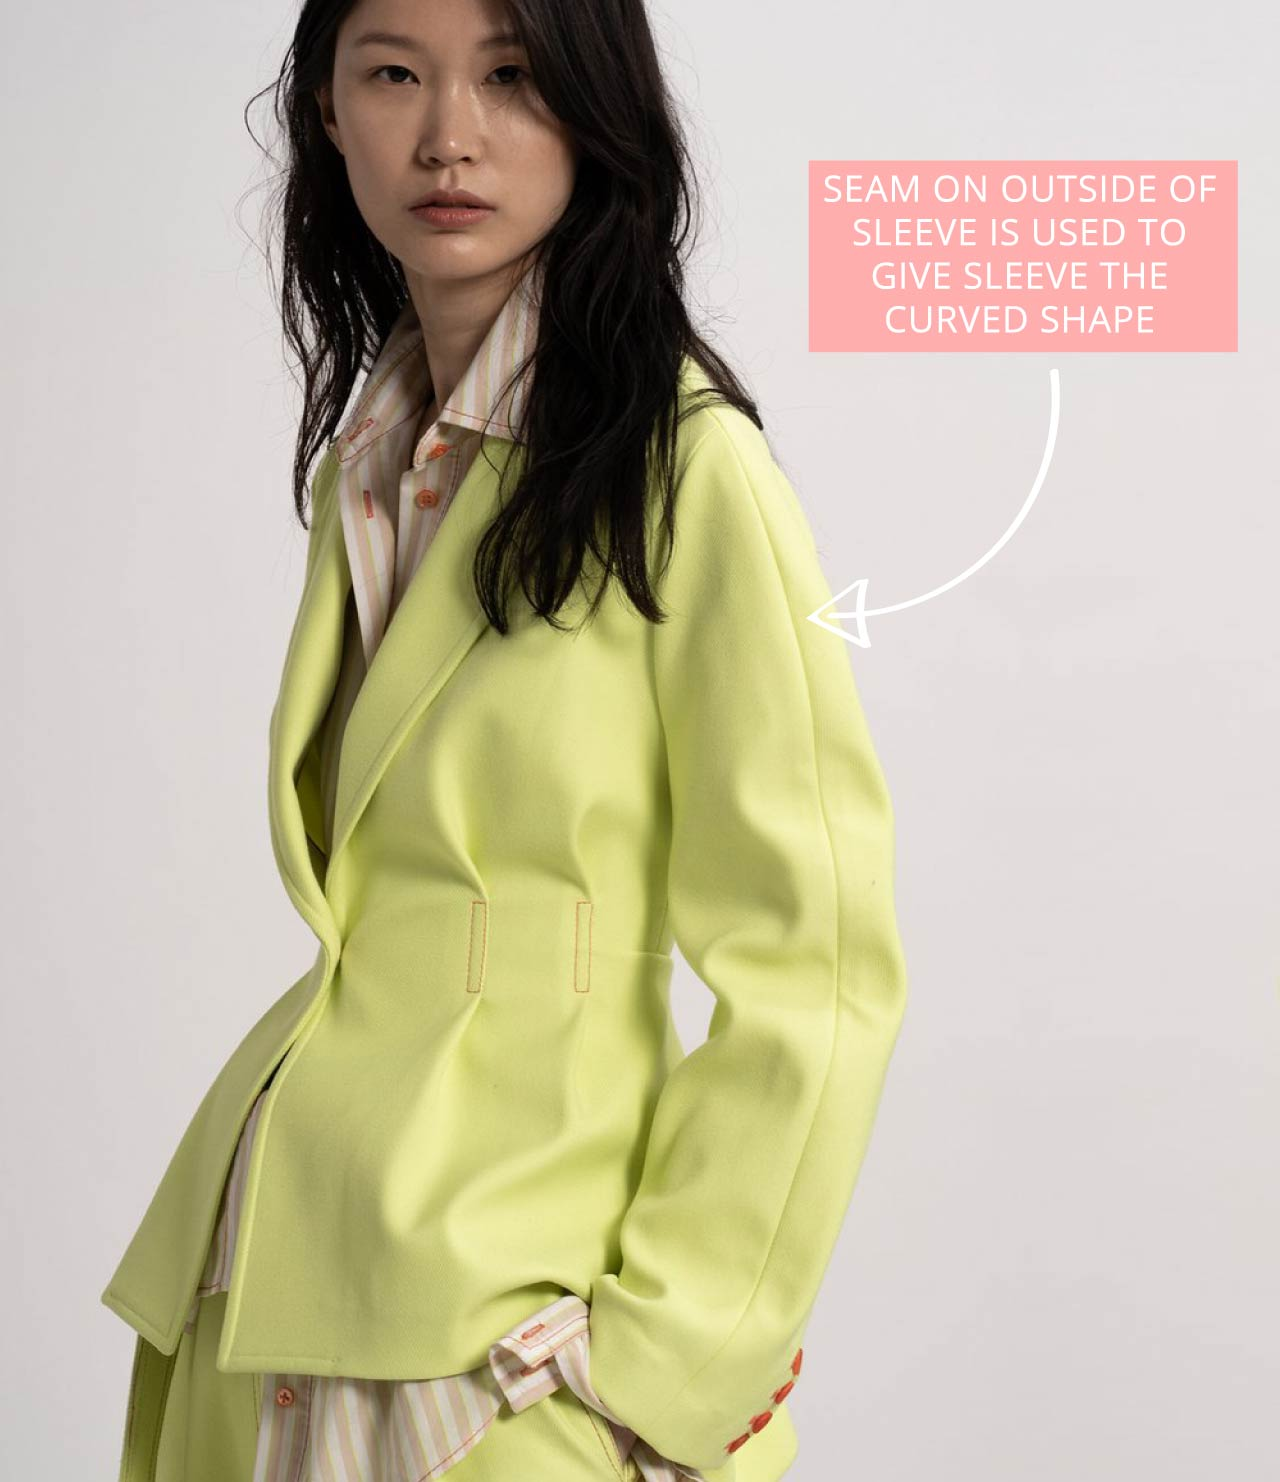 Sies Marjan Jacket Details   The Cutting Class. Curved sleeve shaped by outside seam.